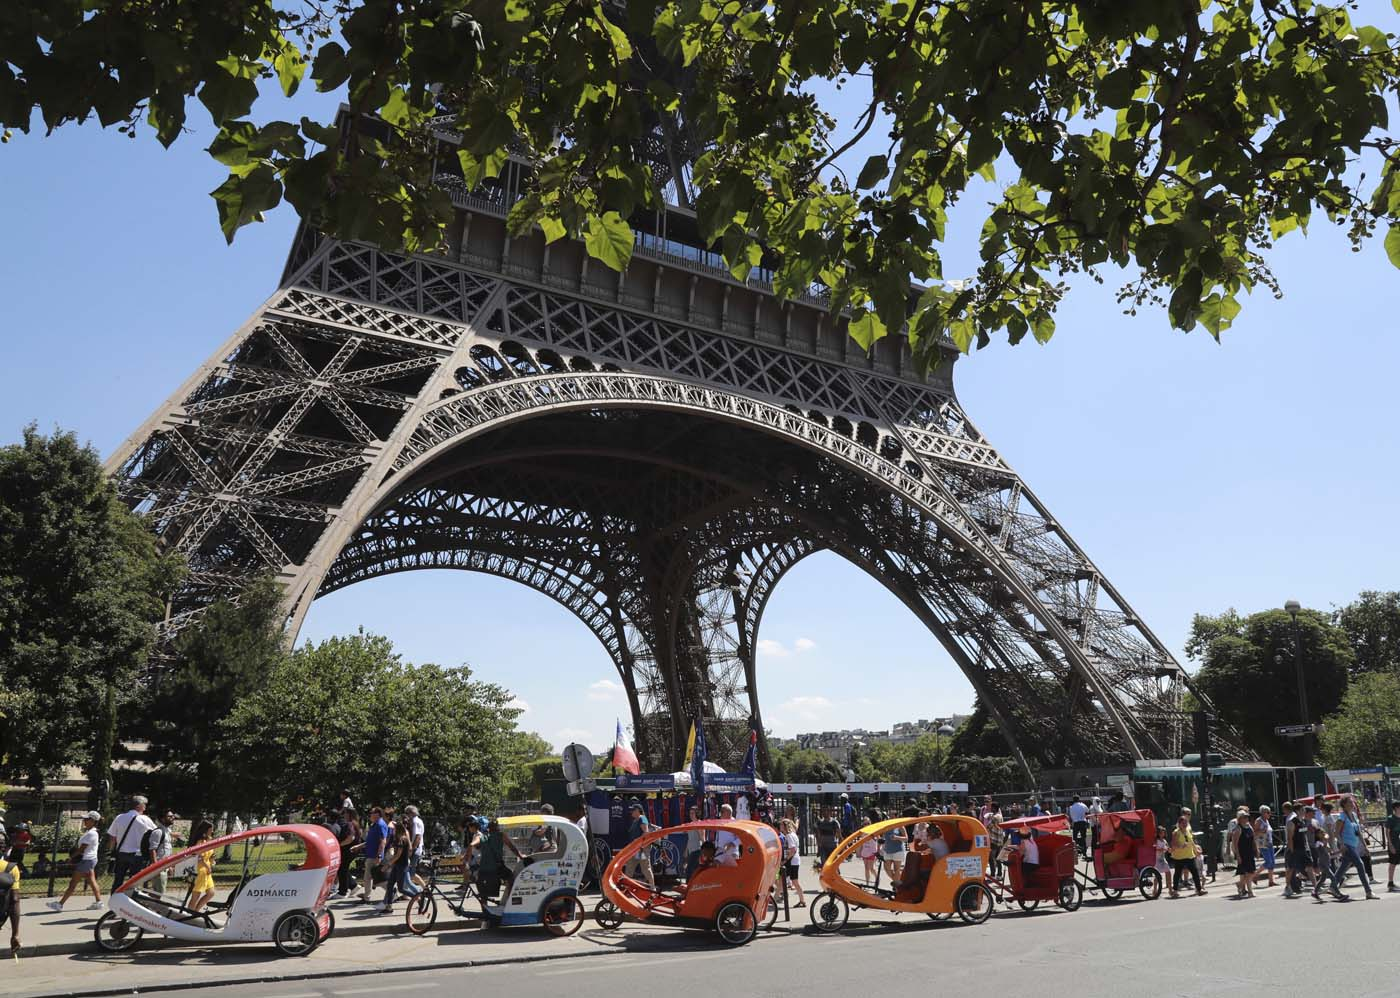 (FILES) This file photo taken on July 07, 2017 shows Pedicab drivers waiting for clients near the Eiffel Tower in Paris. After a decline in 2016 due to the terror attacks in Paris and Nice, tourism in Paris and Ile de France is in much better shape in the first half of 2017, with 1,5 million tourists and 3,3 million overnight stays more than a year ago. / AFP PHOTO / JACQUES DEMARTHON